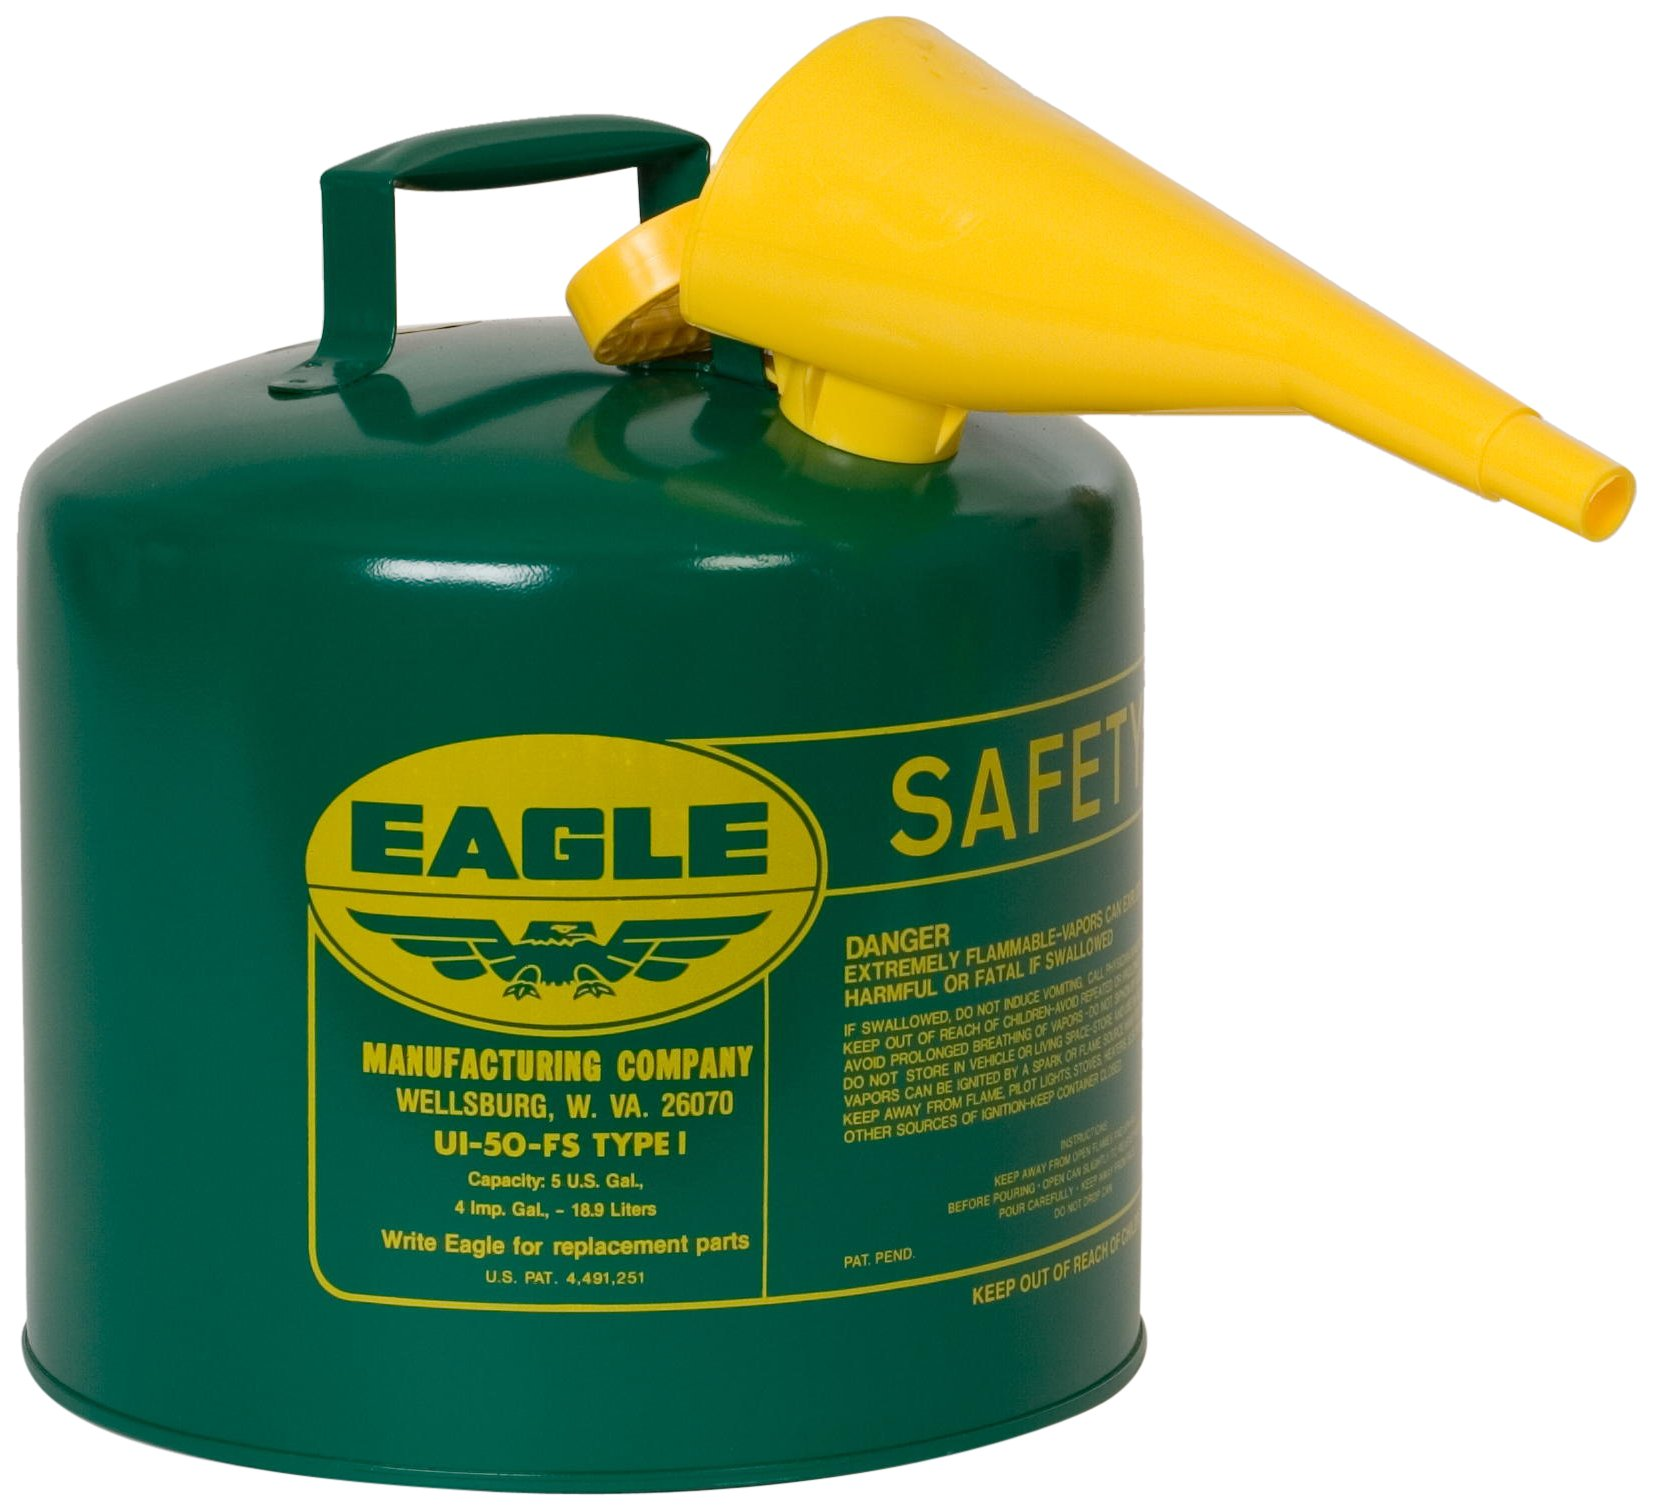 Eagle UI-50-FSG Type I Metal Safety Can with F-15 Funnel, Combustibles, 12-1/2'' Width x 13-1/2'' Depth, 5 Gallon Capacity, Green